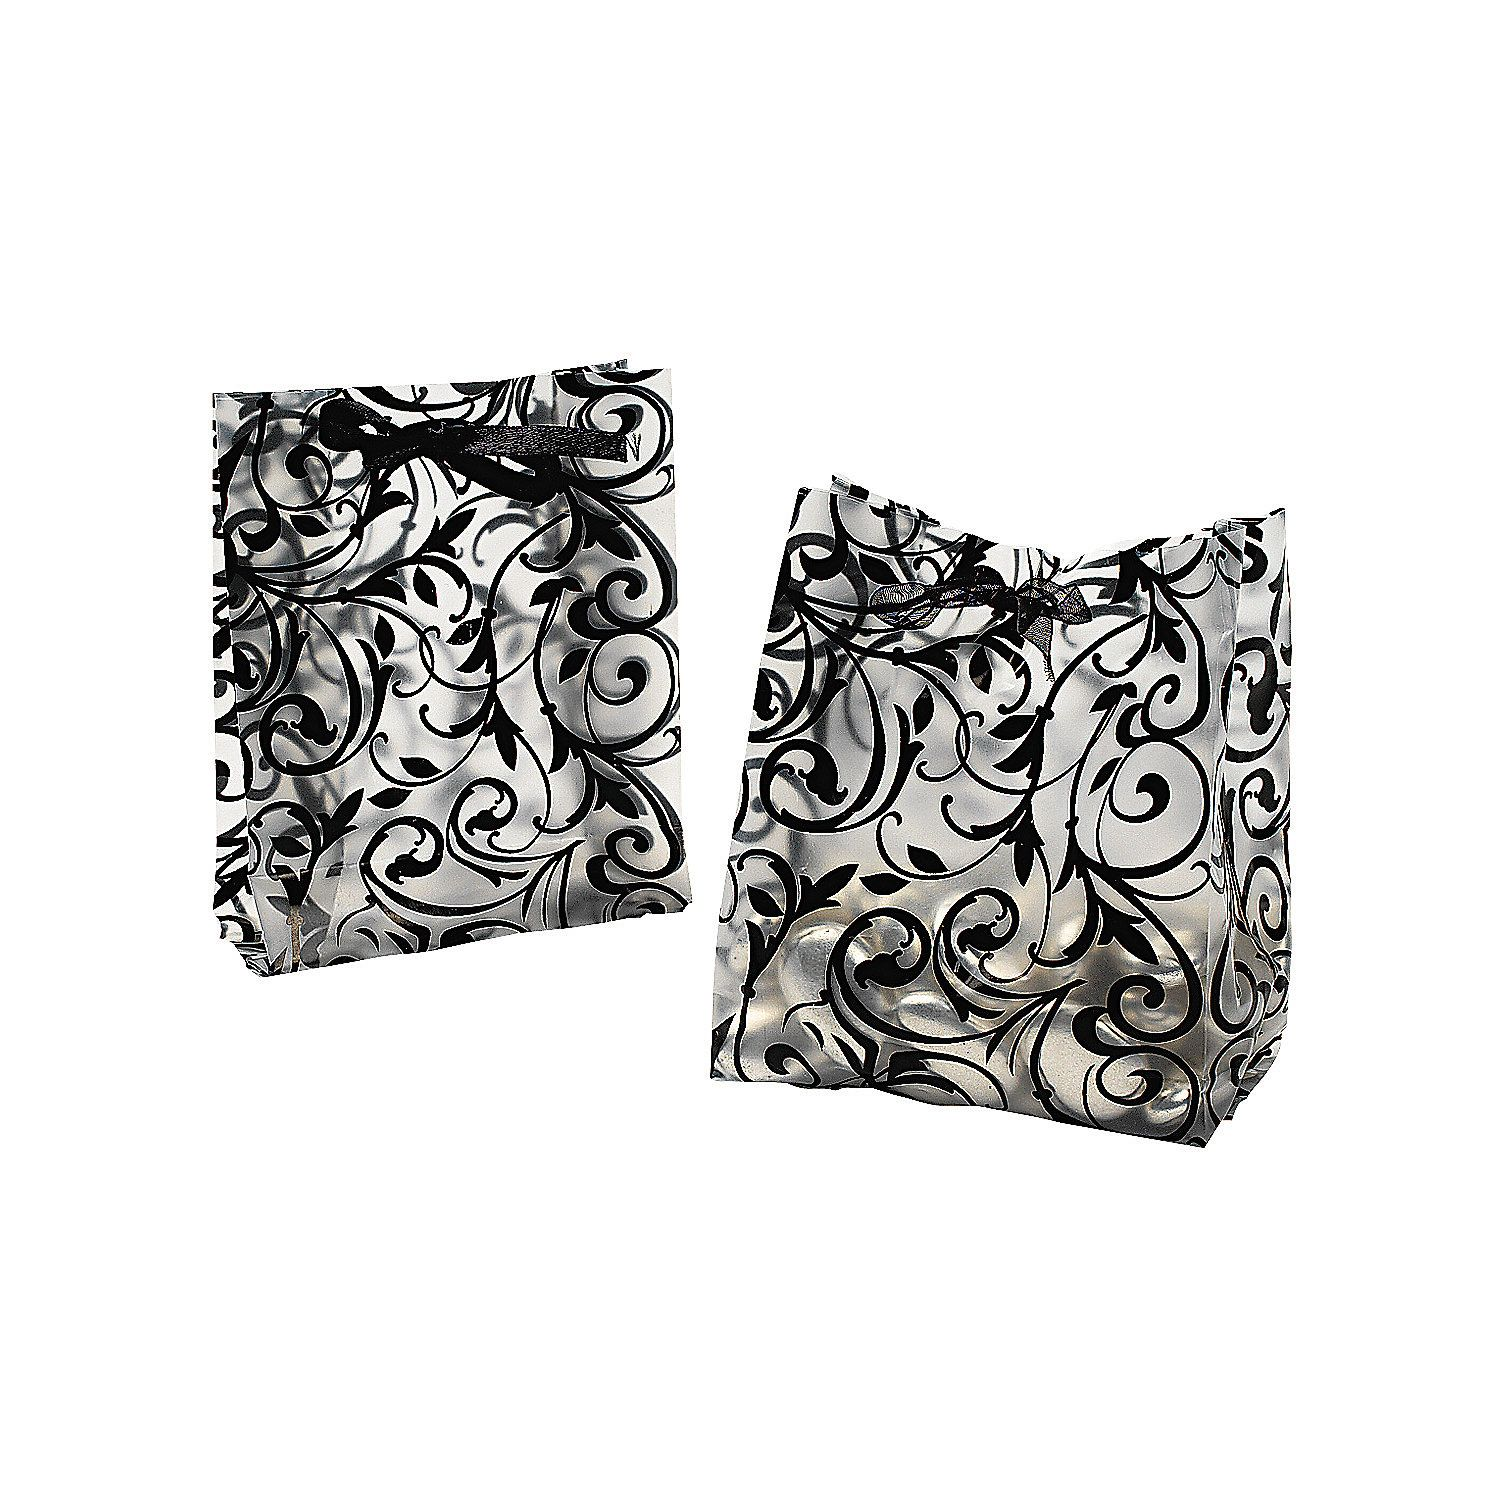 Frosted Black & White Wedding Cellophane Bags | Wedding bag ...